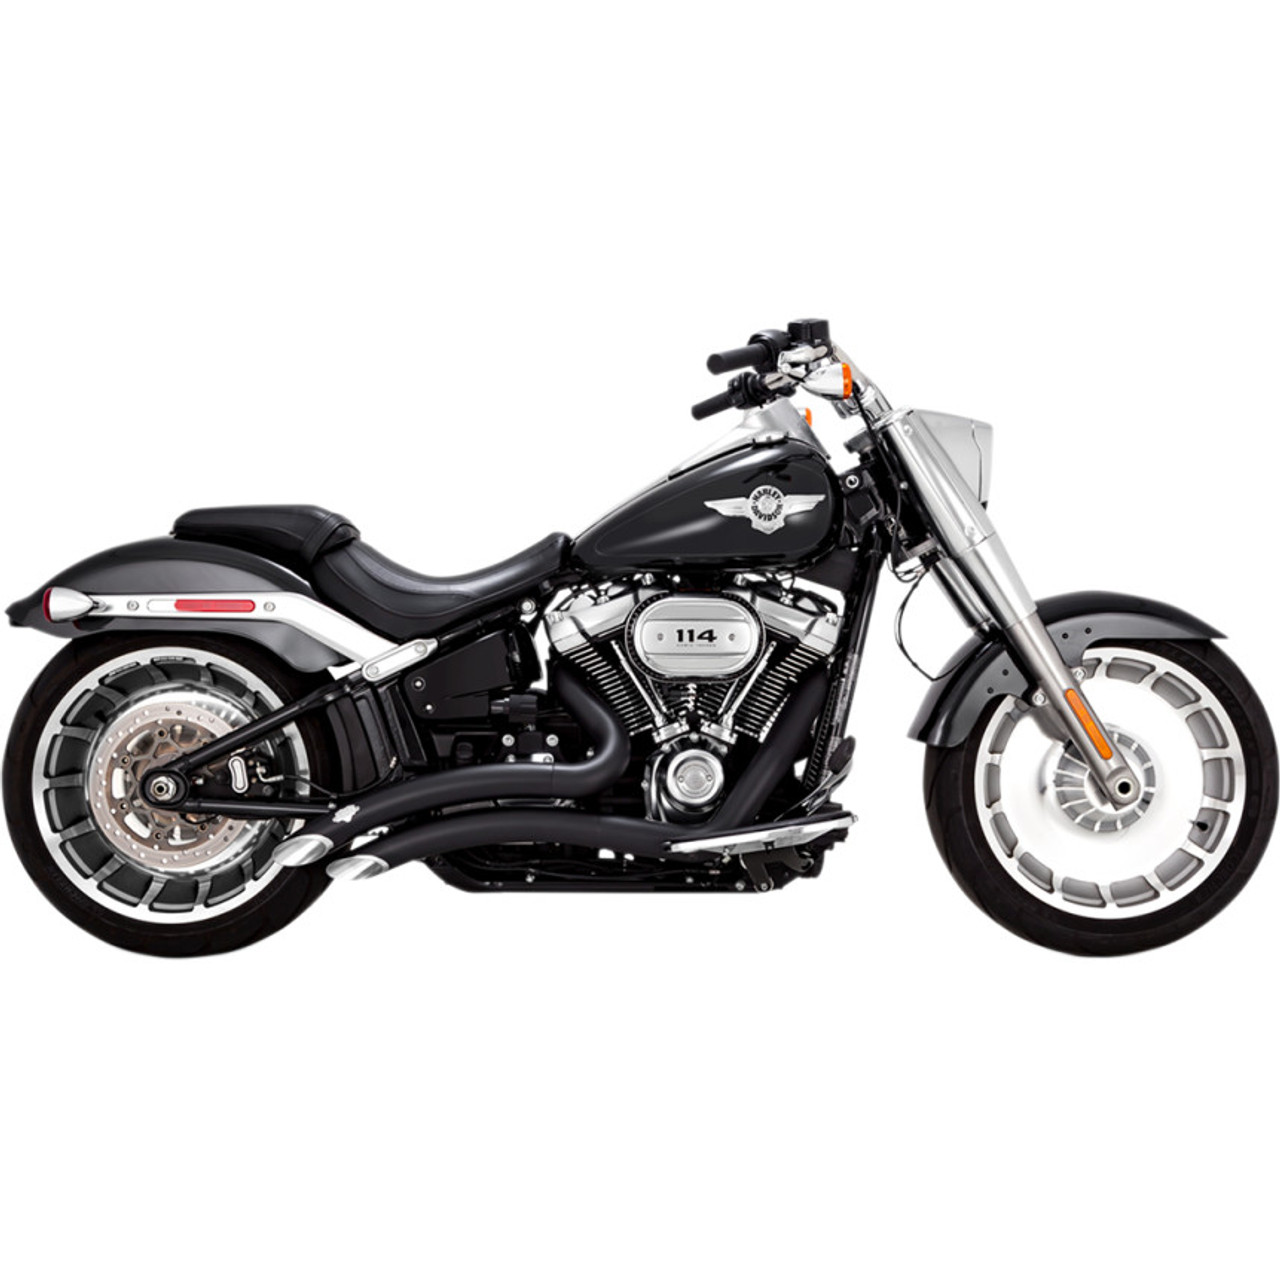 vance hines big radius exhaust for 2018 harley softail. Black Bedroom Furniture Sets. Home Design Ideas